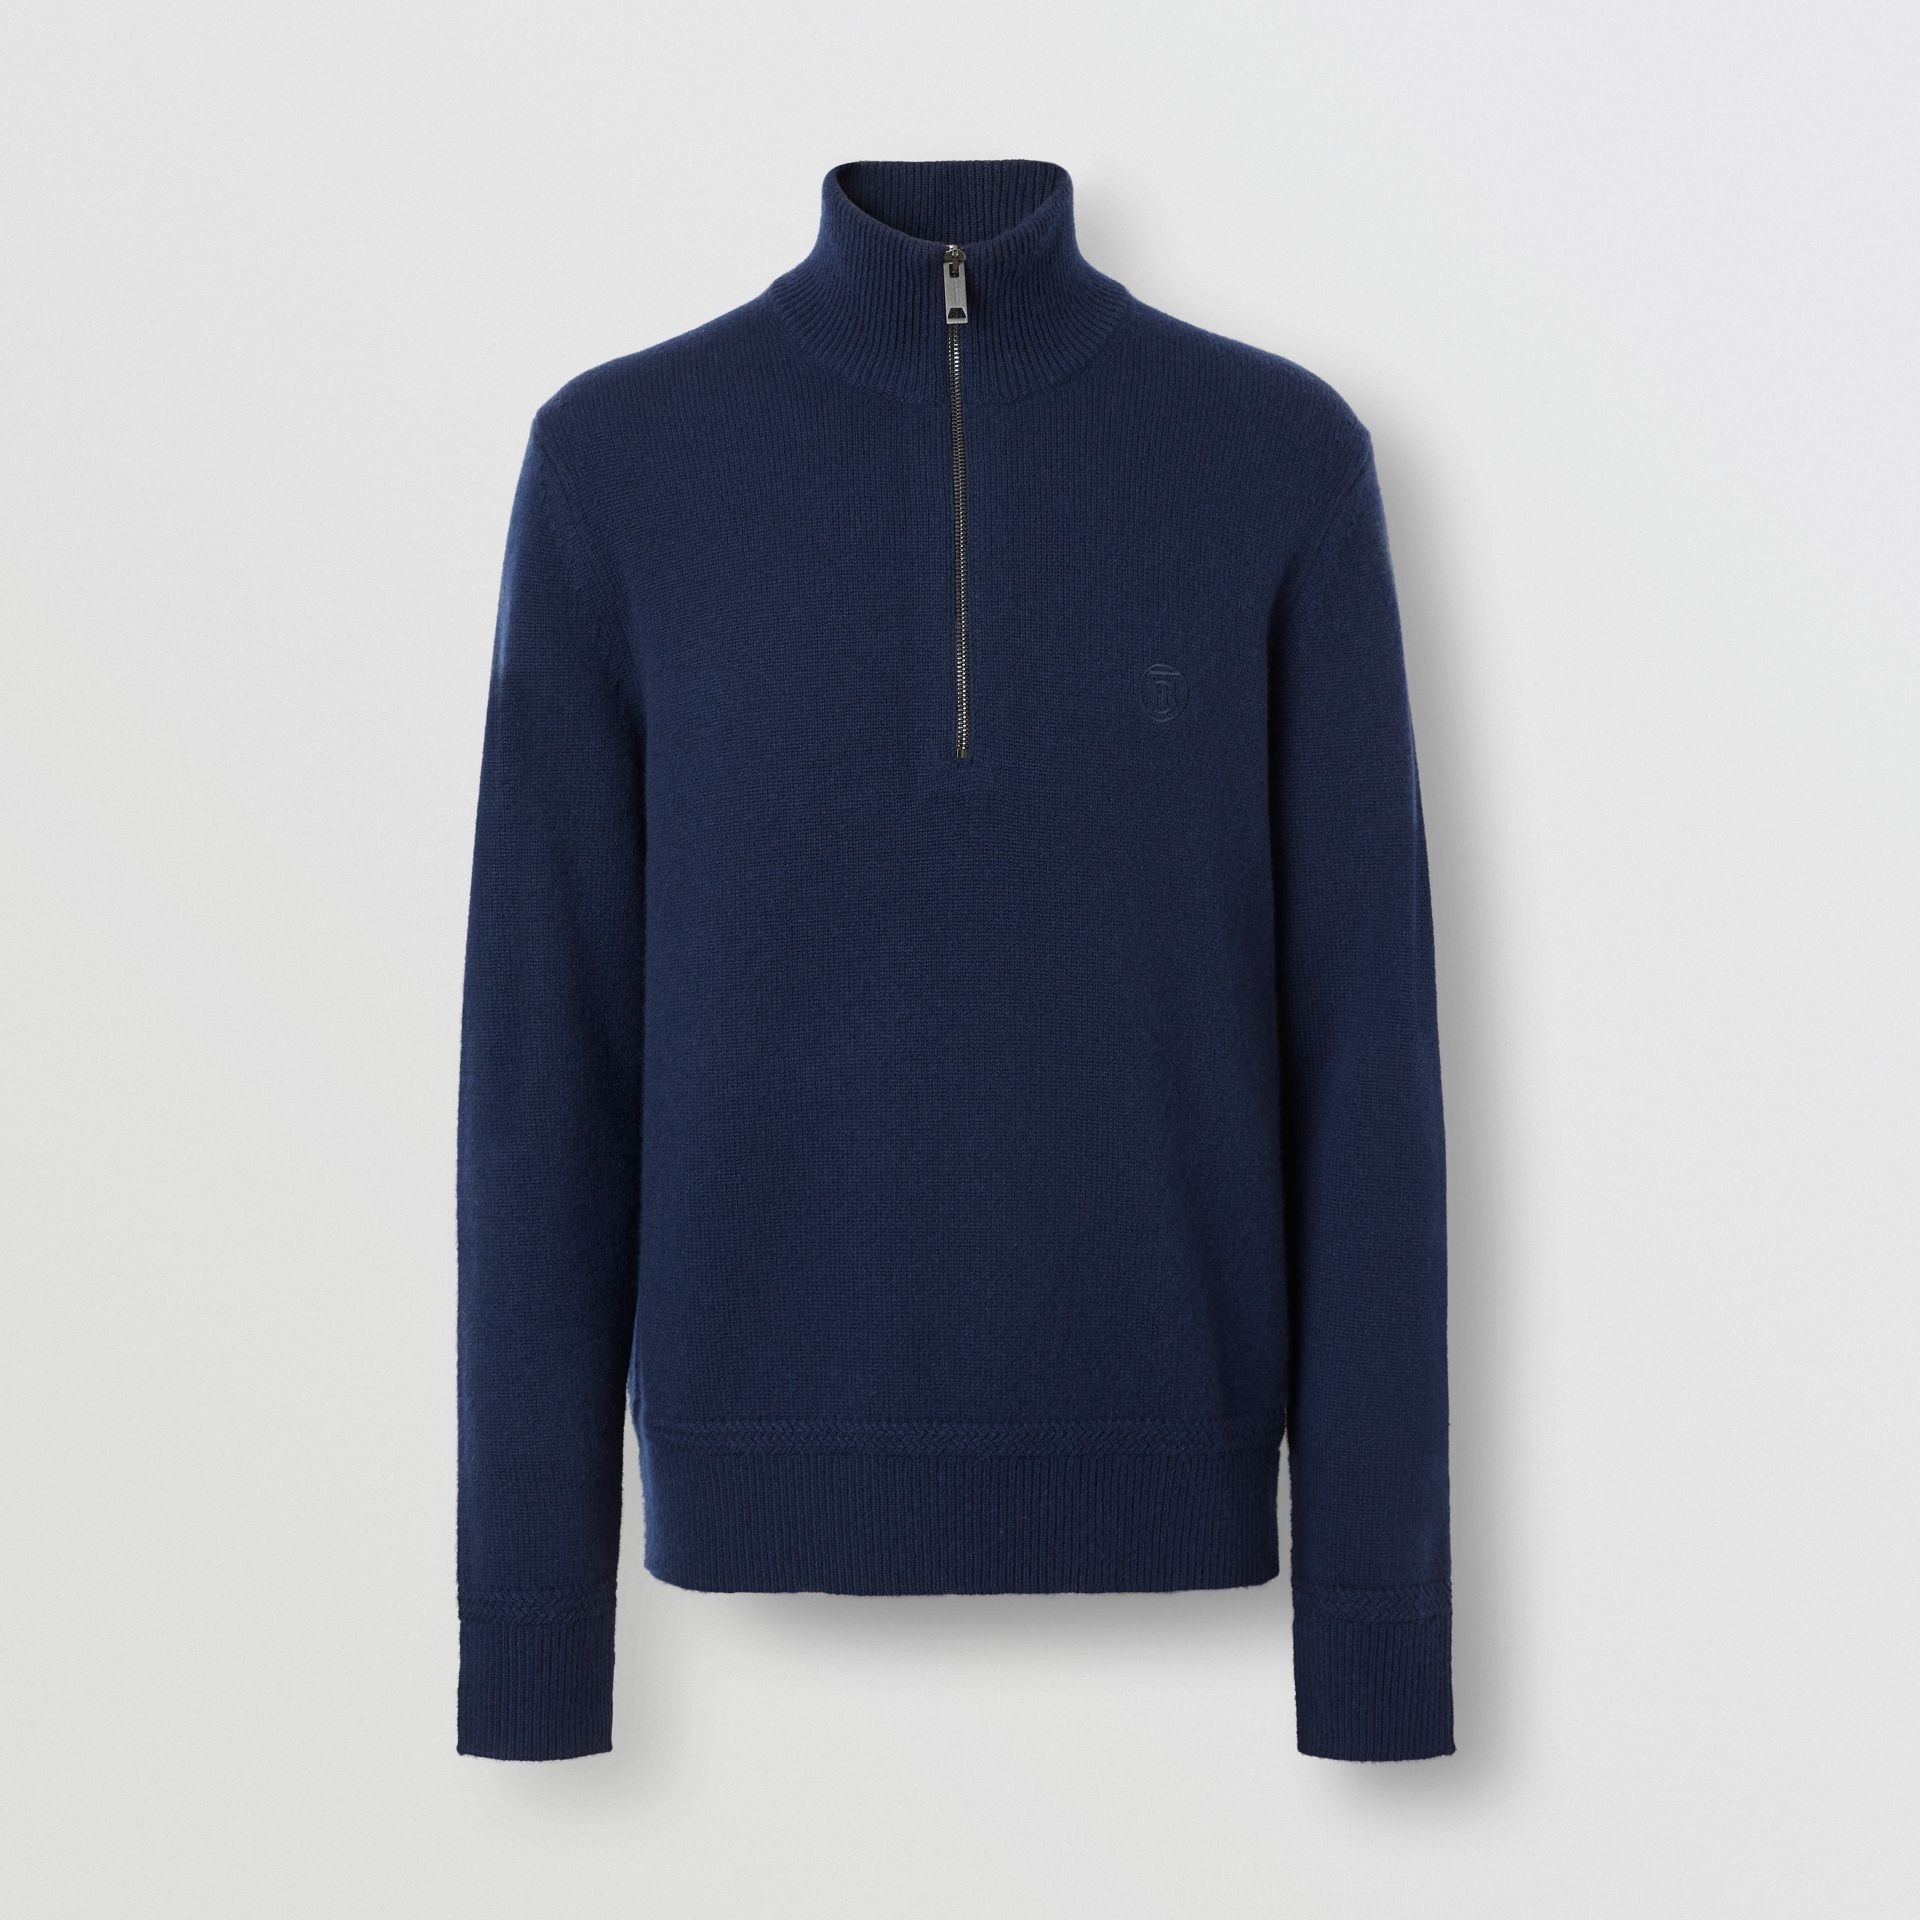 Monogram Motif Cashmere Funnel Neck Sweater in Navy - Men | Burberry - gallery image 3